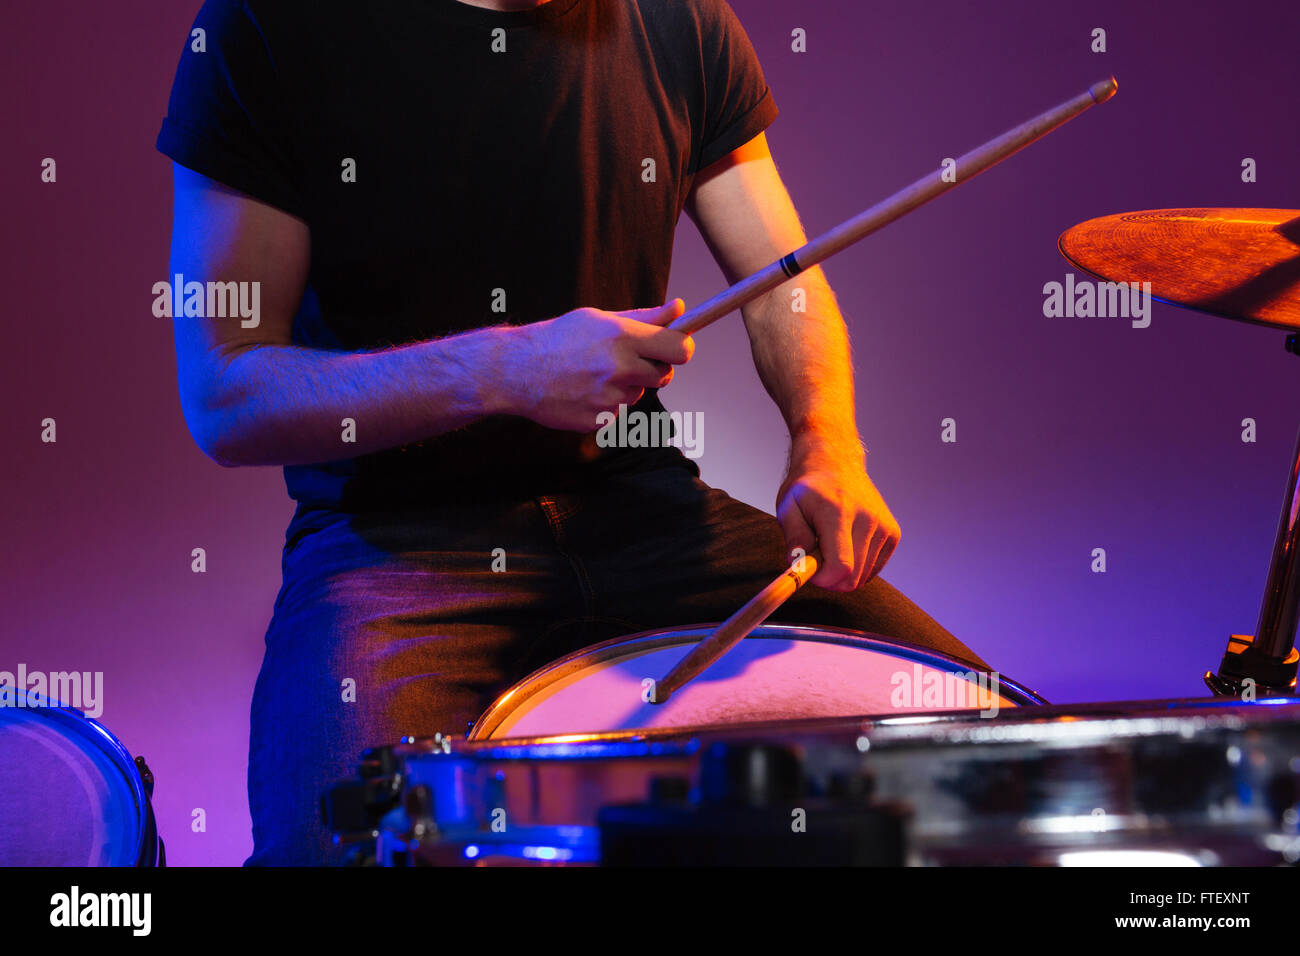 Closeup of hands of man drummer sitting and playing drums with drumsticks over dark background - Stock Image